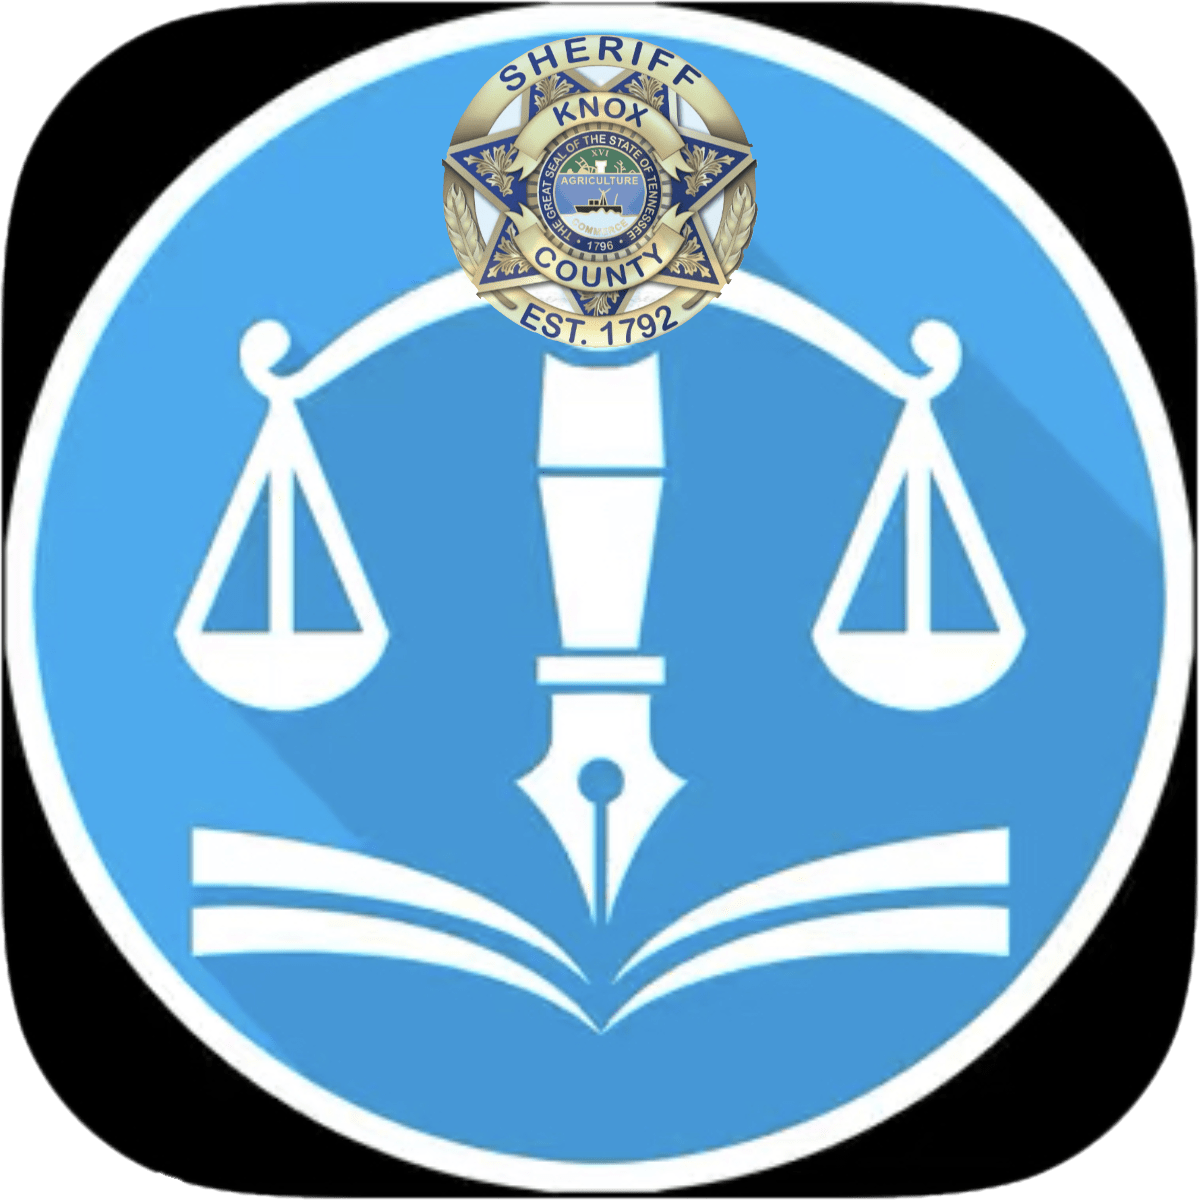 Scales of justice in blue circle with KCSO badge